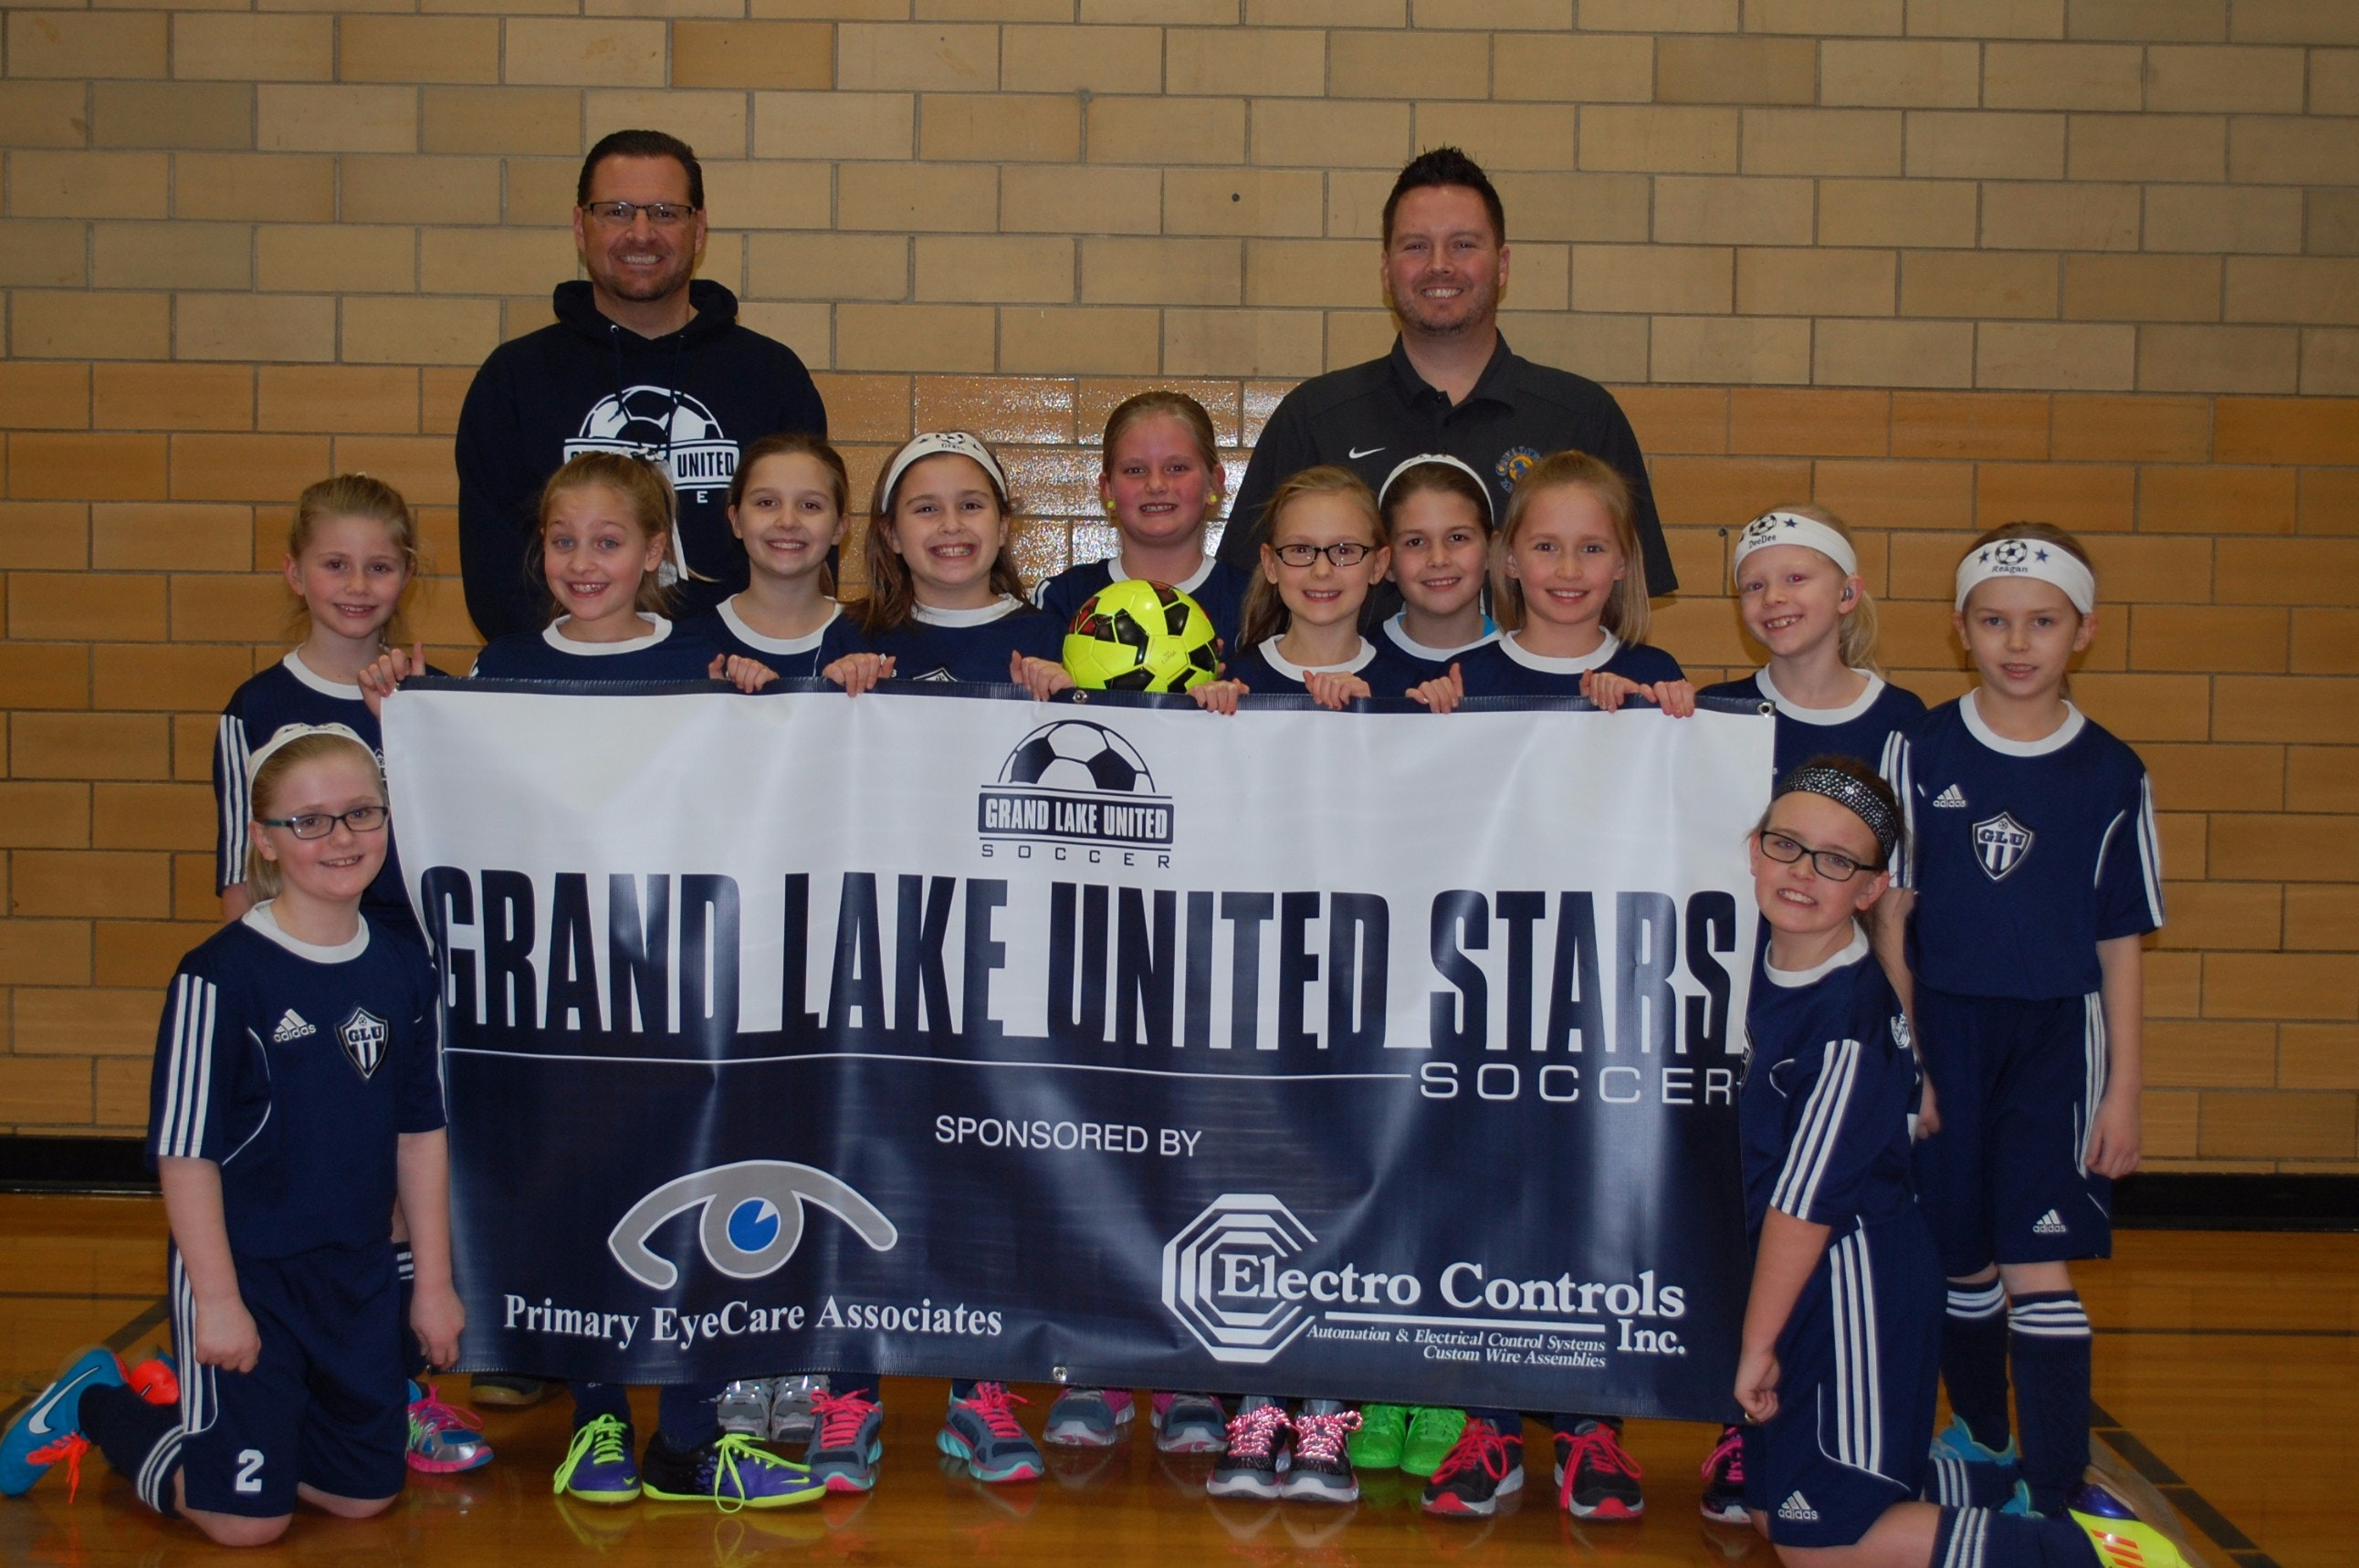 Grand Lake United Stars Girls Soccer